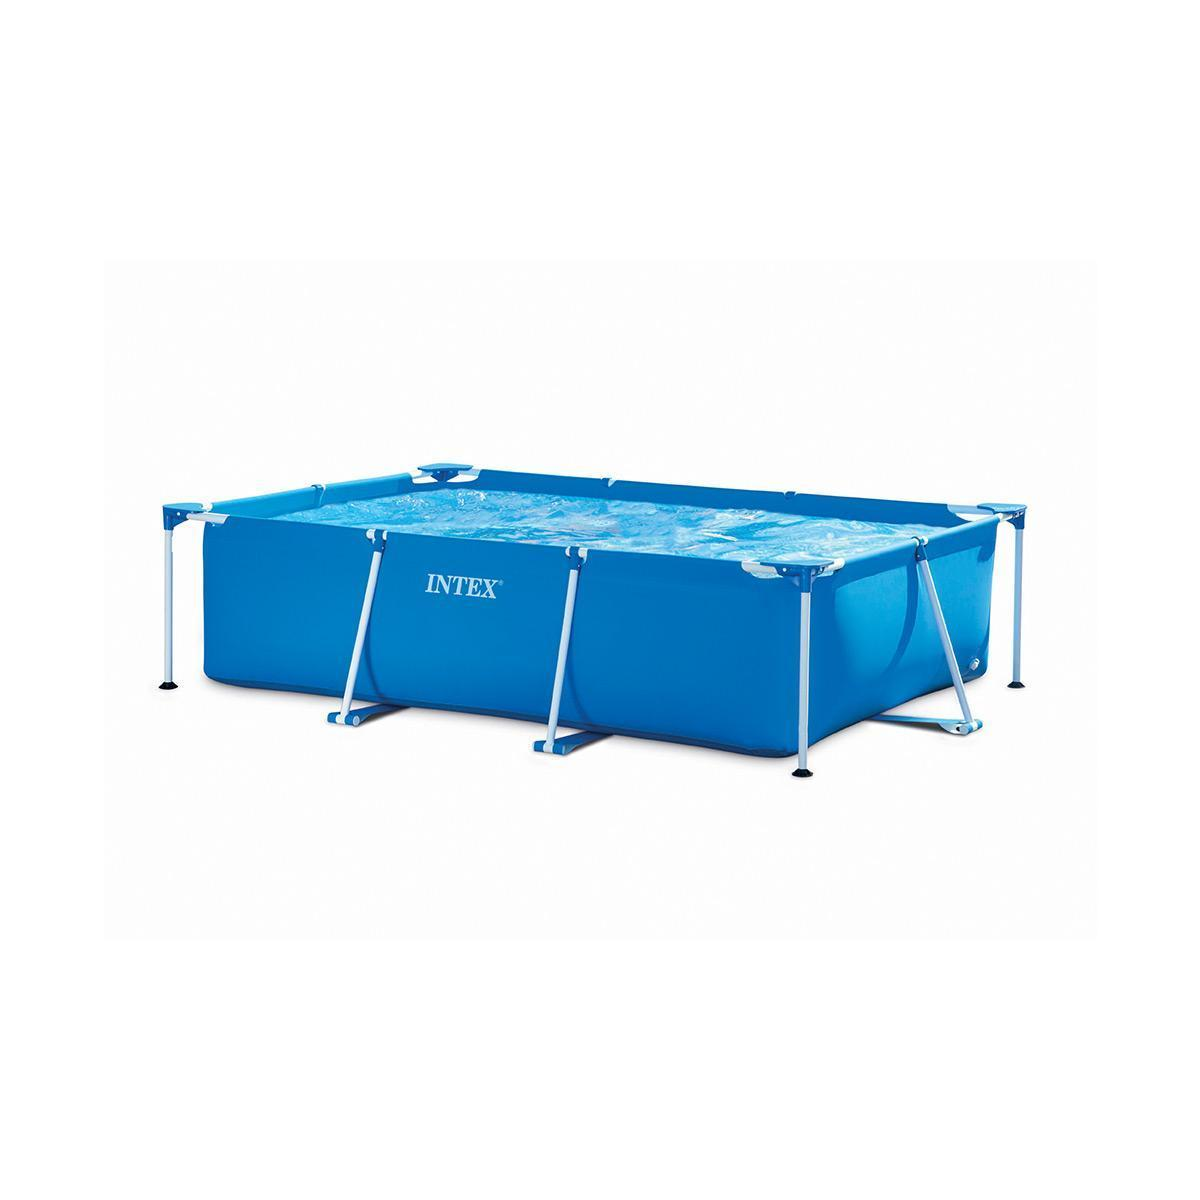 Piscine tubulaire rectangulaire Metal Frame Junior - 3 x 2 x H 0.75 m